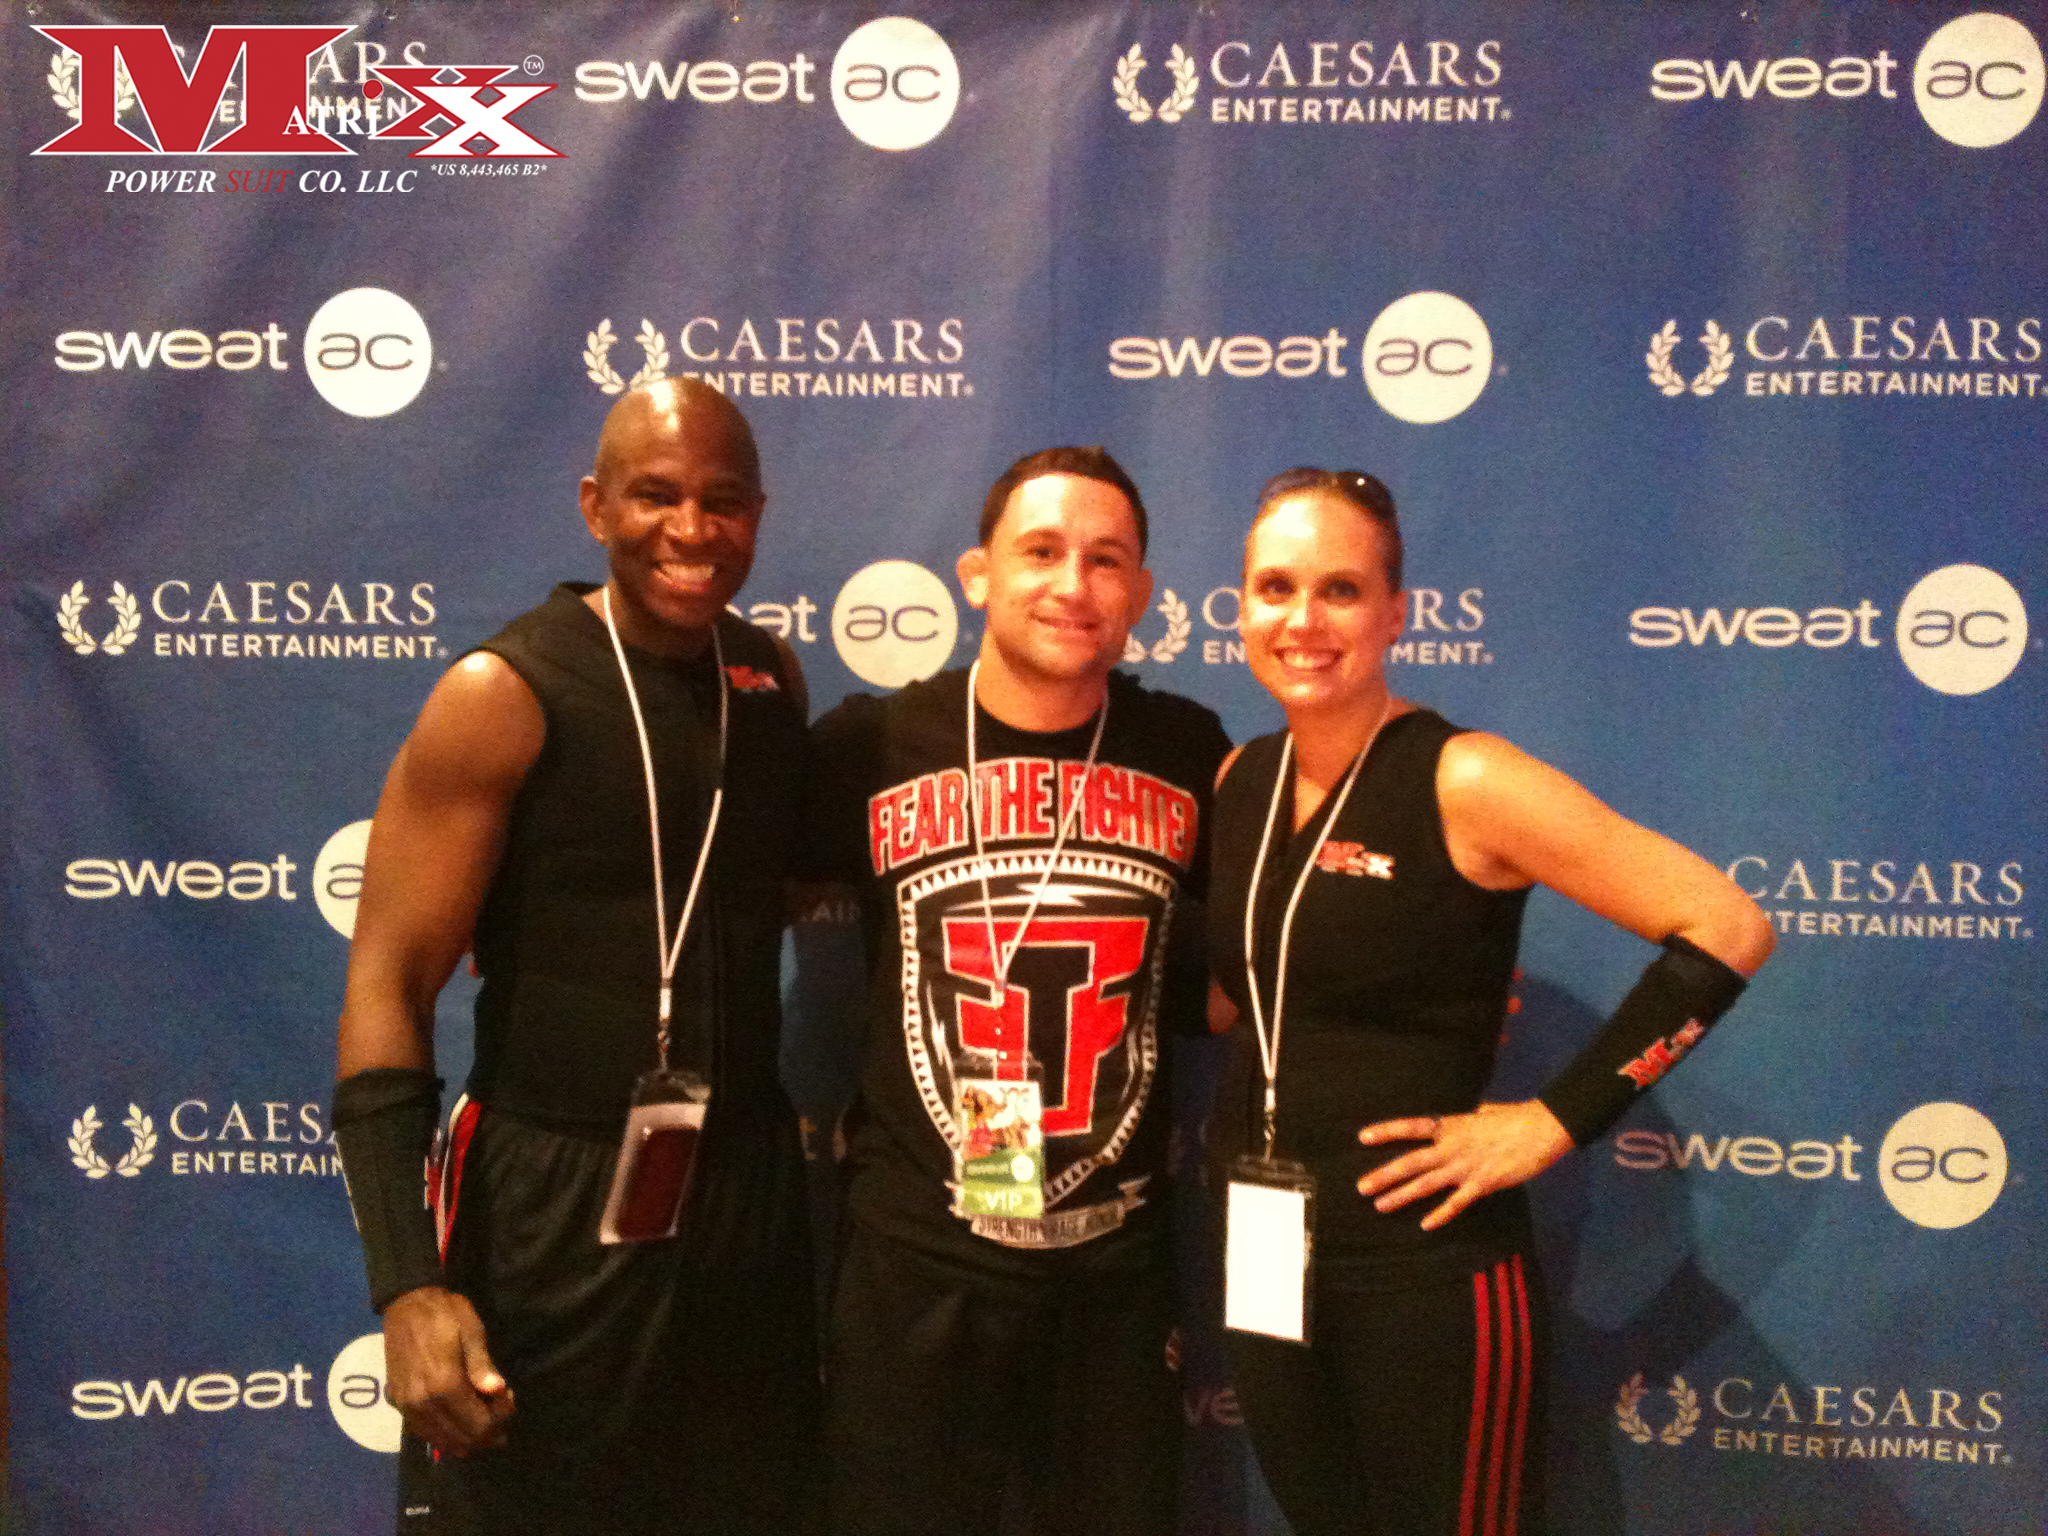 """Calvin & Holly w MMA fighter """"Frankie Edgar"""" @ Sweat AC fitness Expo 2012"""